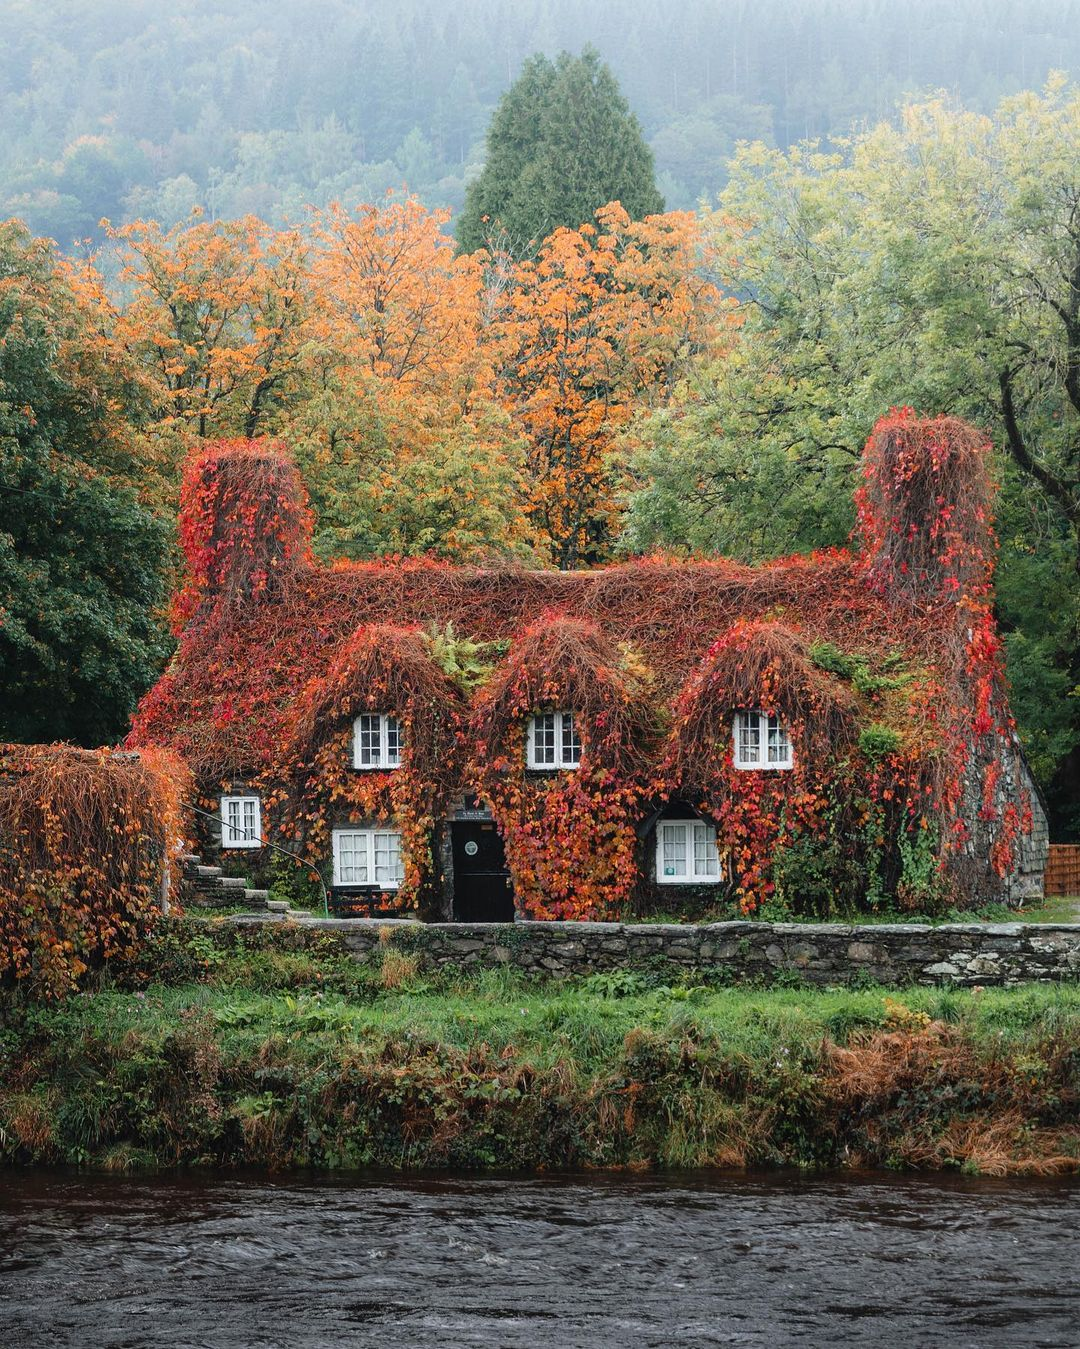 15th-century farmhouse now used as a tea room in Conwy County Borough, North Wales, U